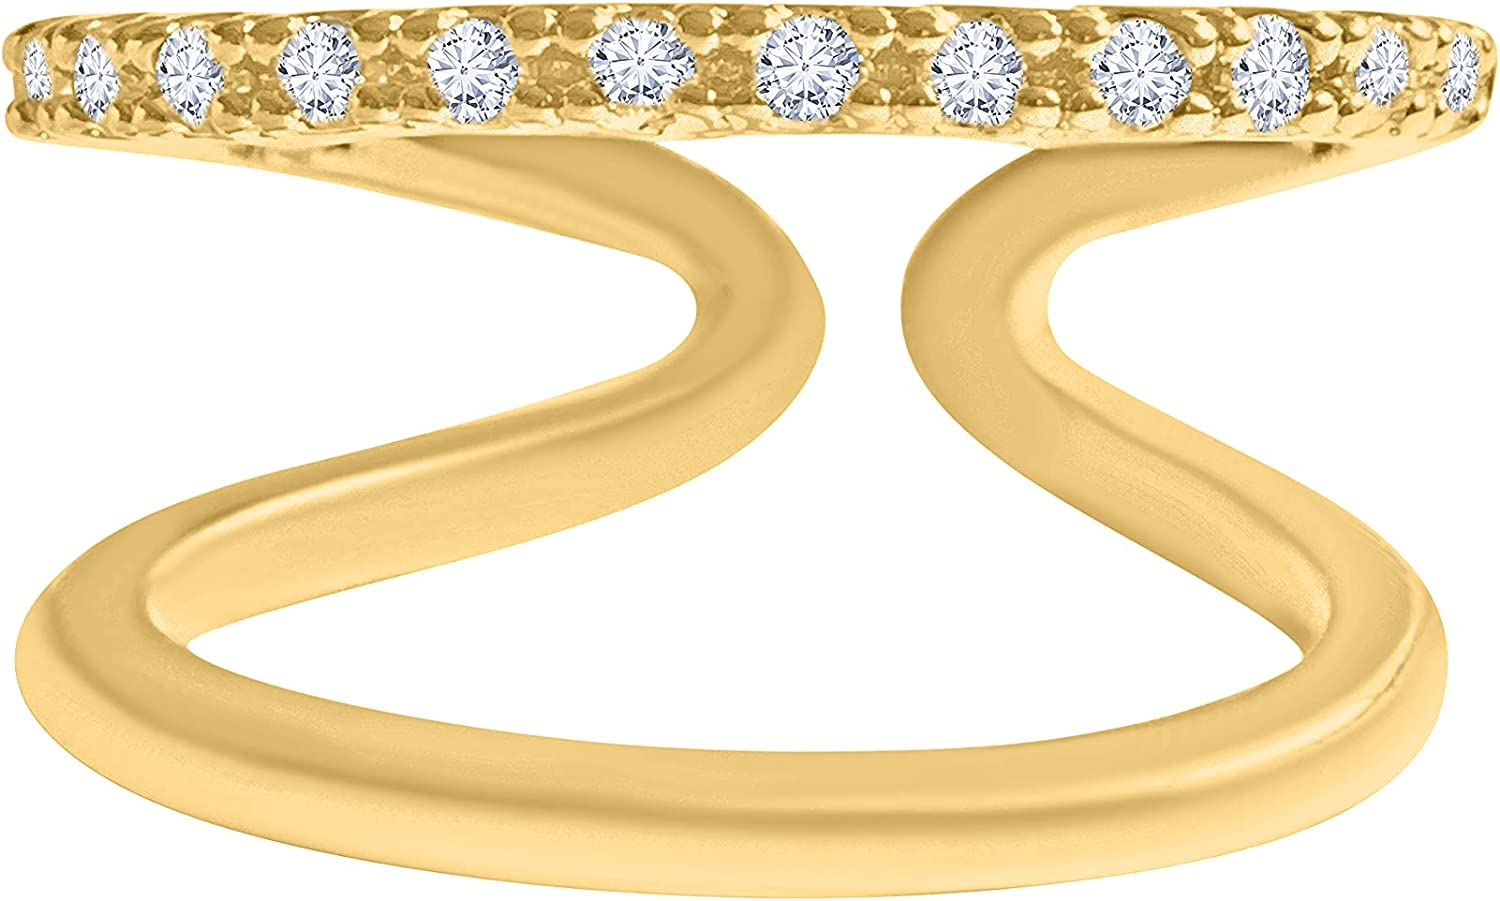 ONDAISY Simulated Diamond Cz Egyptian Double Line First Mid Pinky Adjustable Band Ring